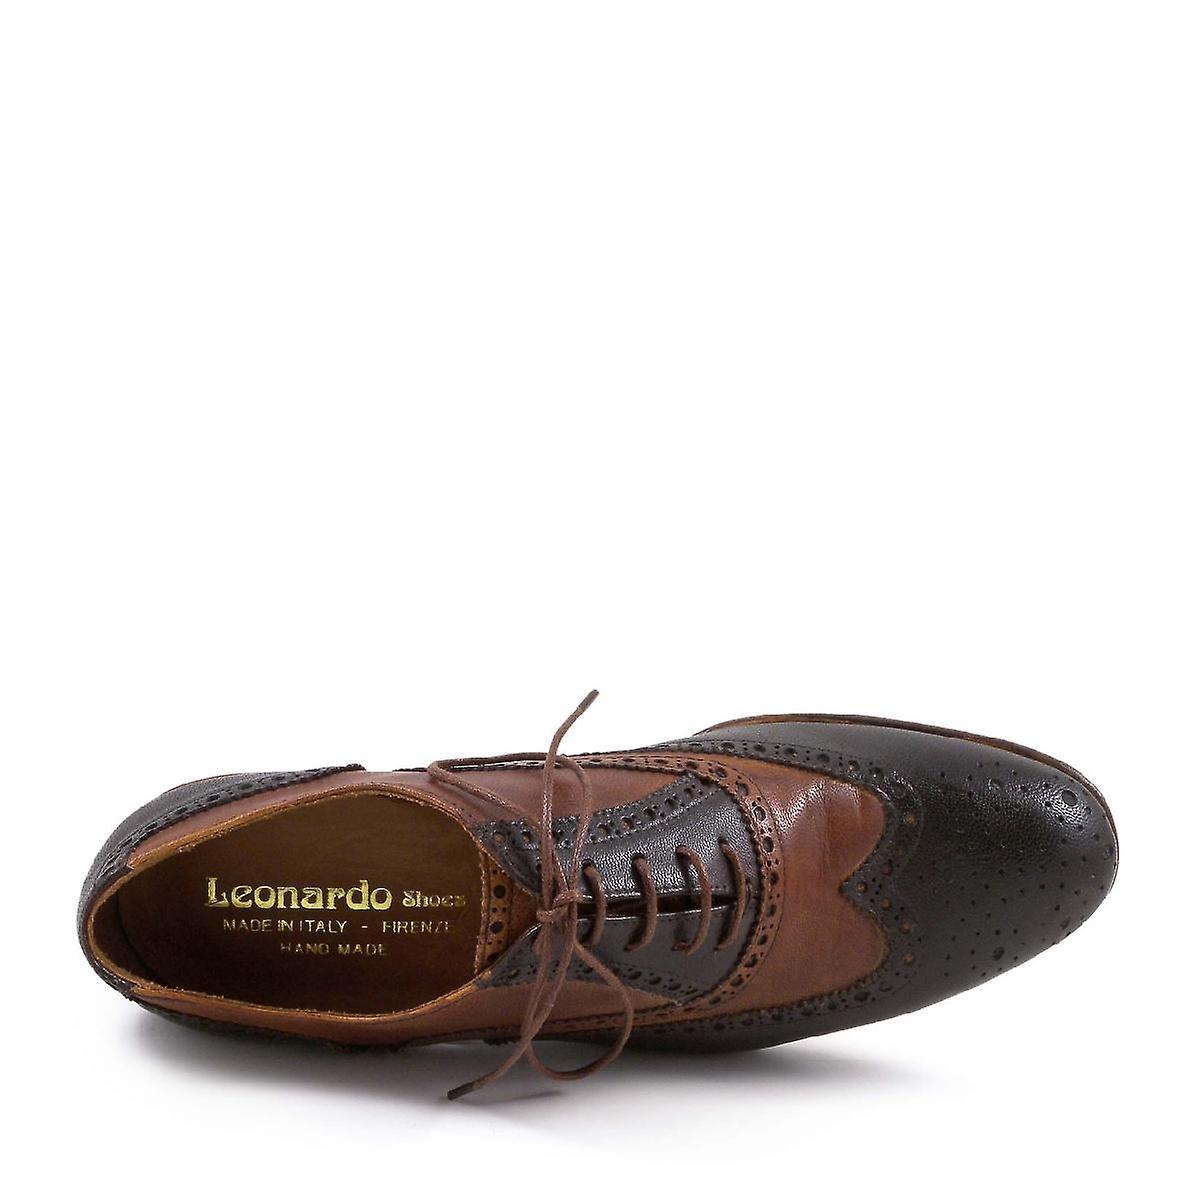 Leonardo Shoes Women's handmade wingtip oxford shoes dark brown/tan leather